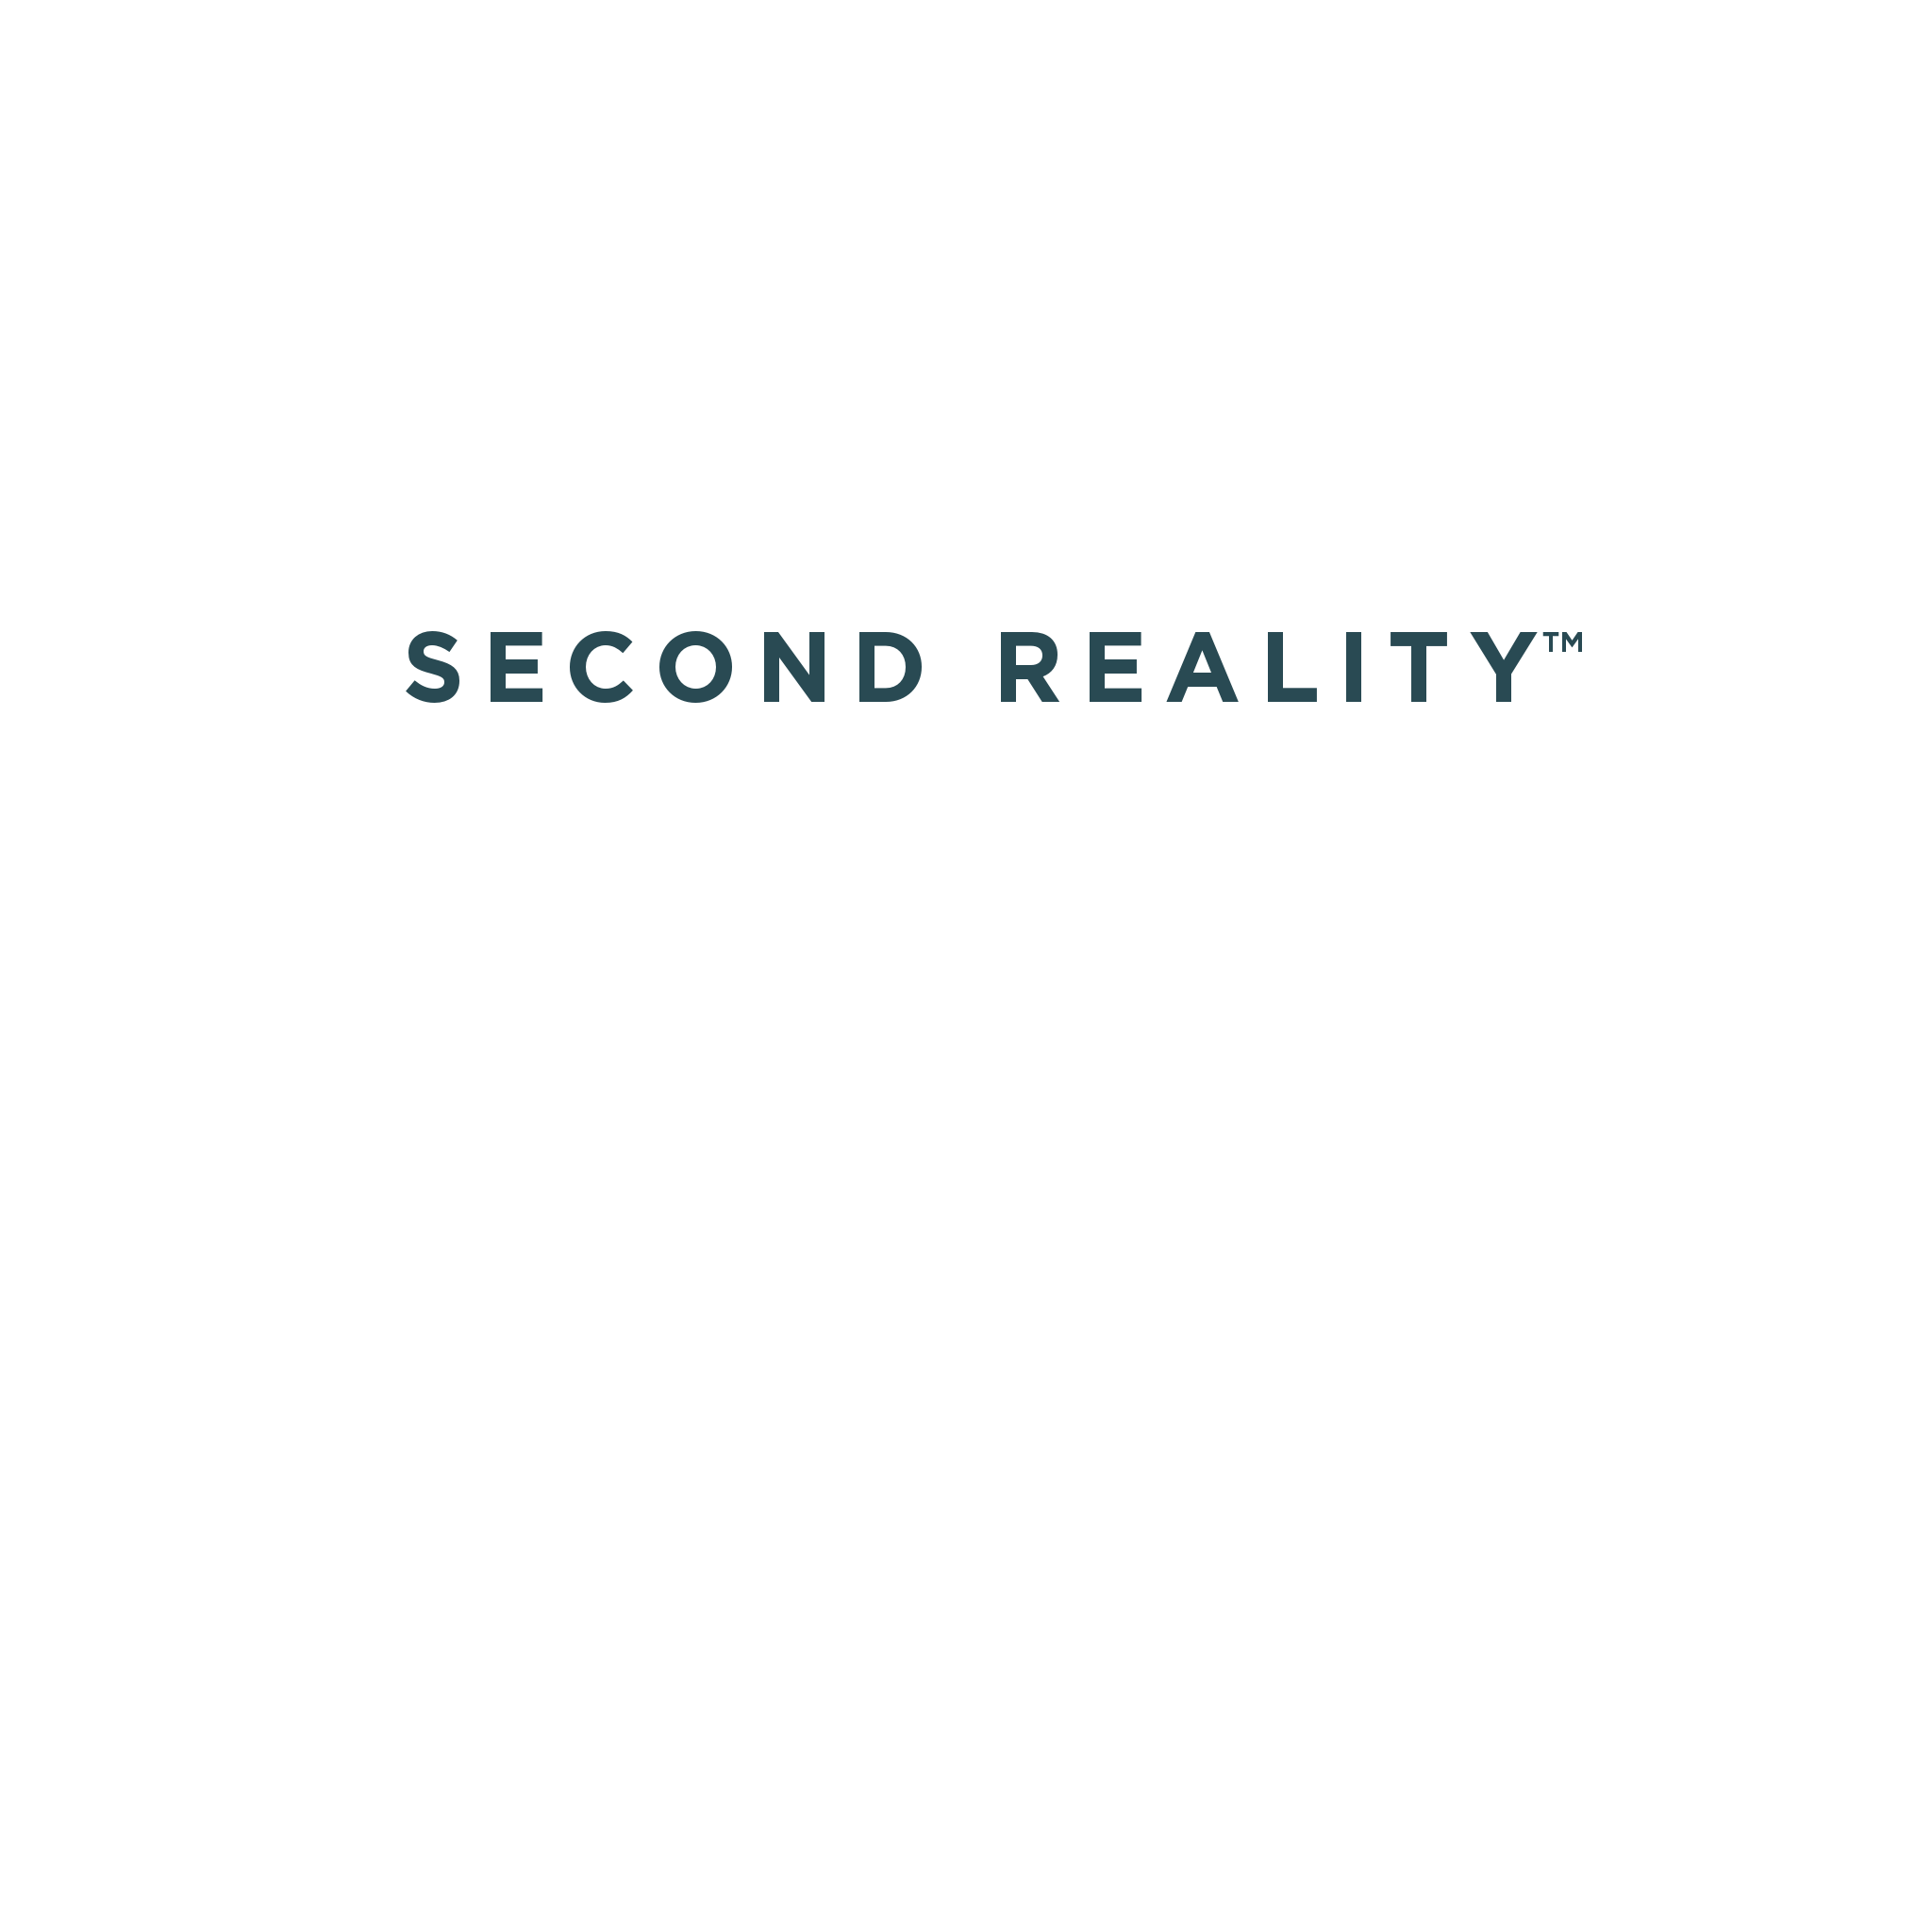 Second Reality ™ Title